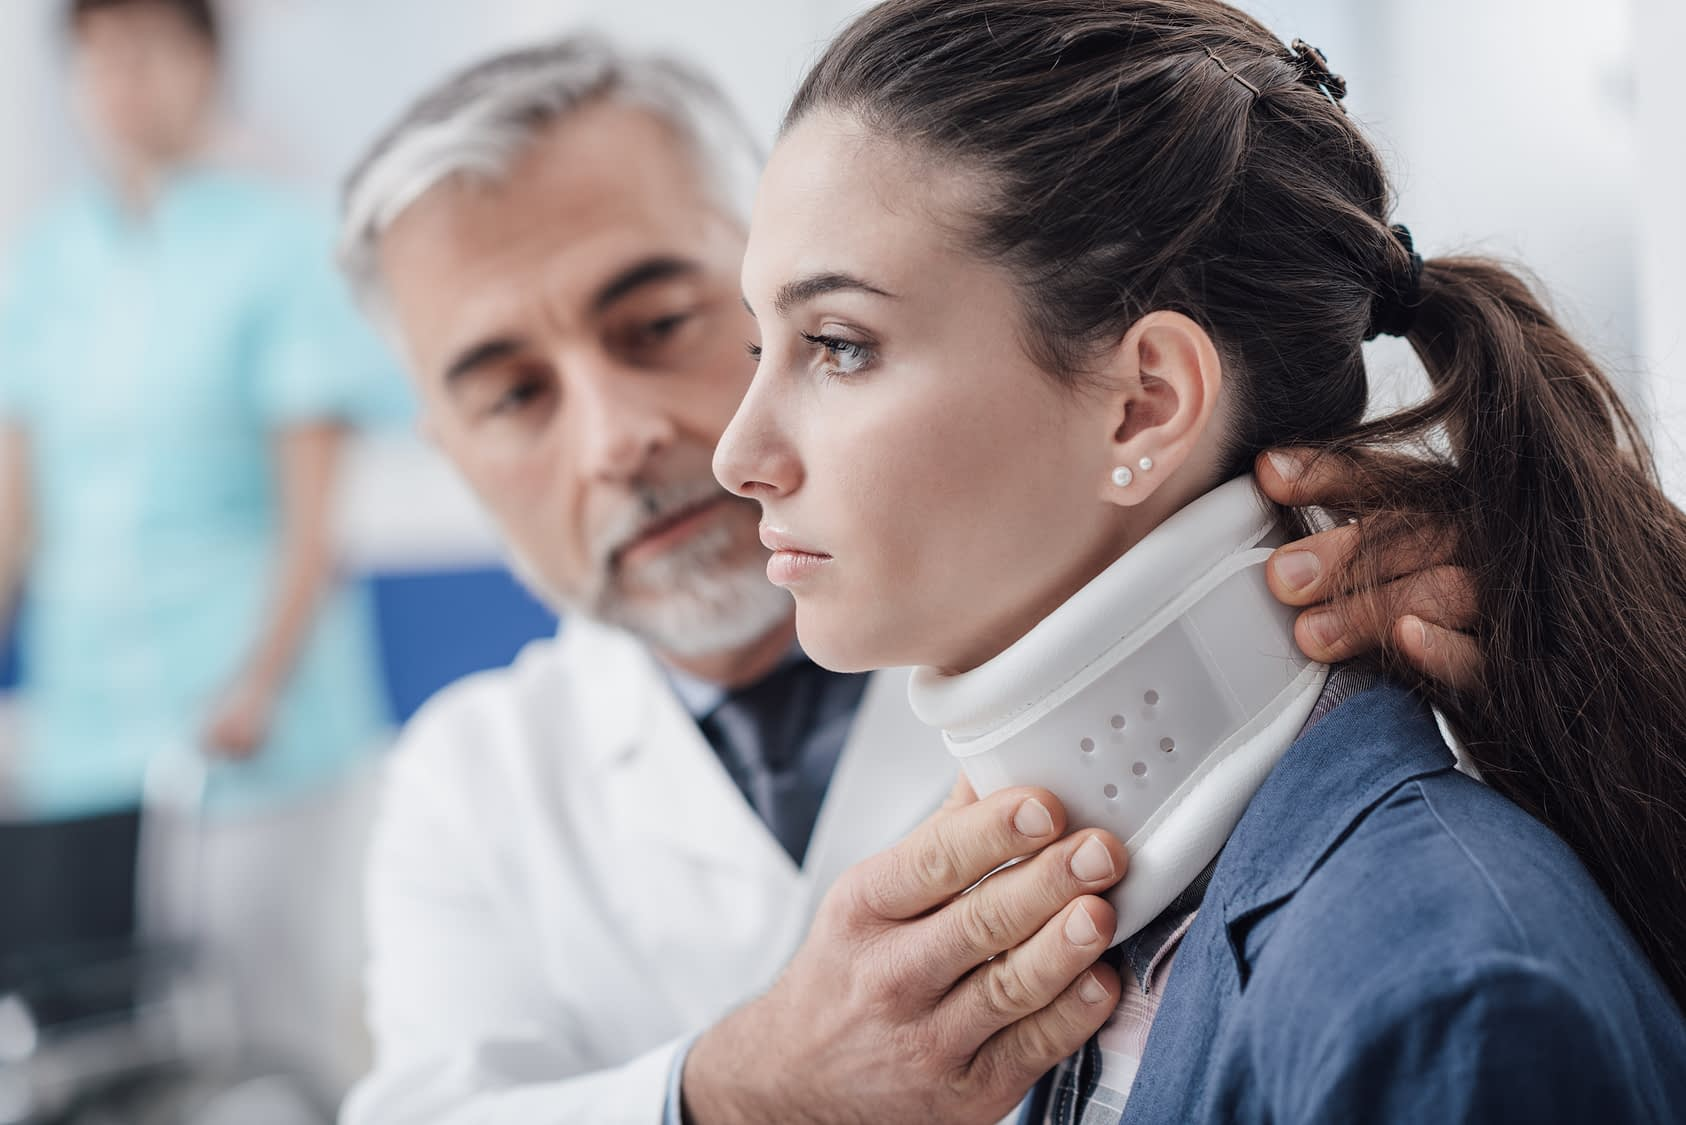 Doctor fitting patient with neck brace